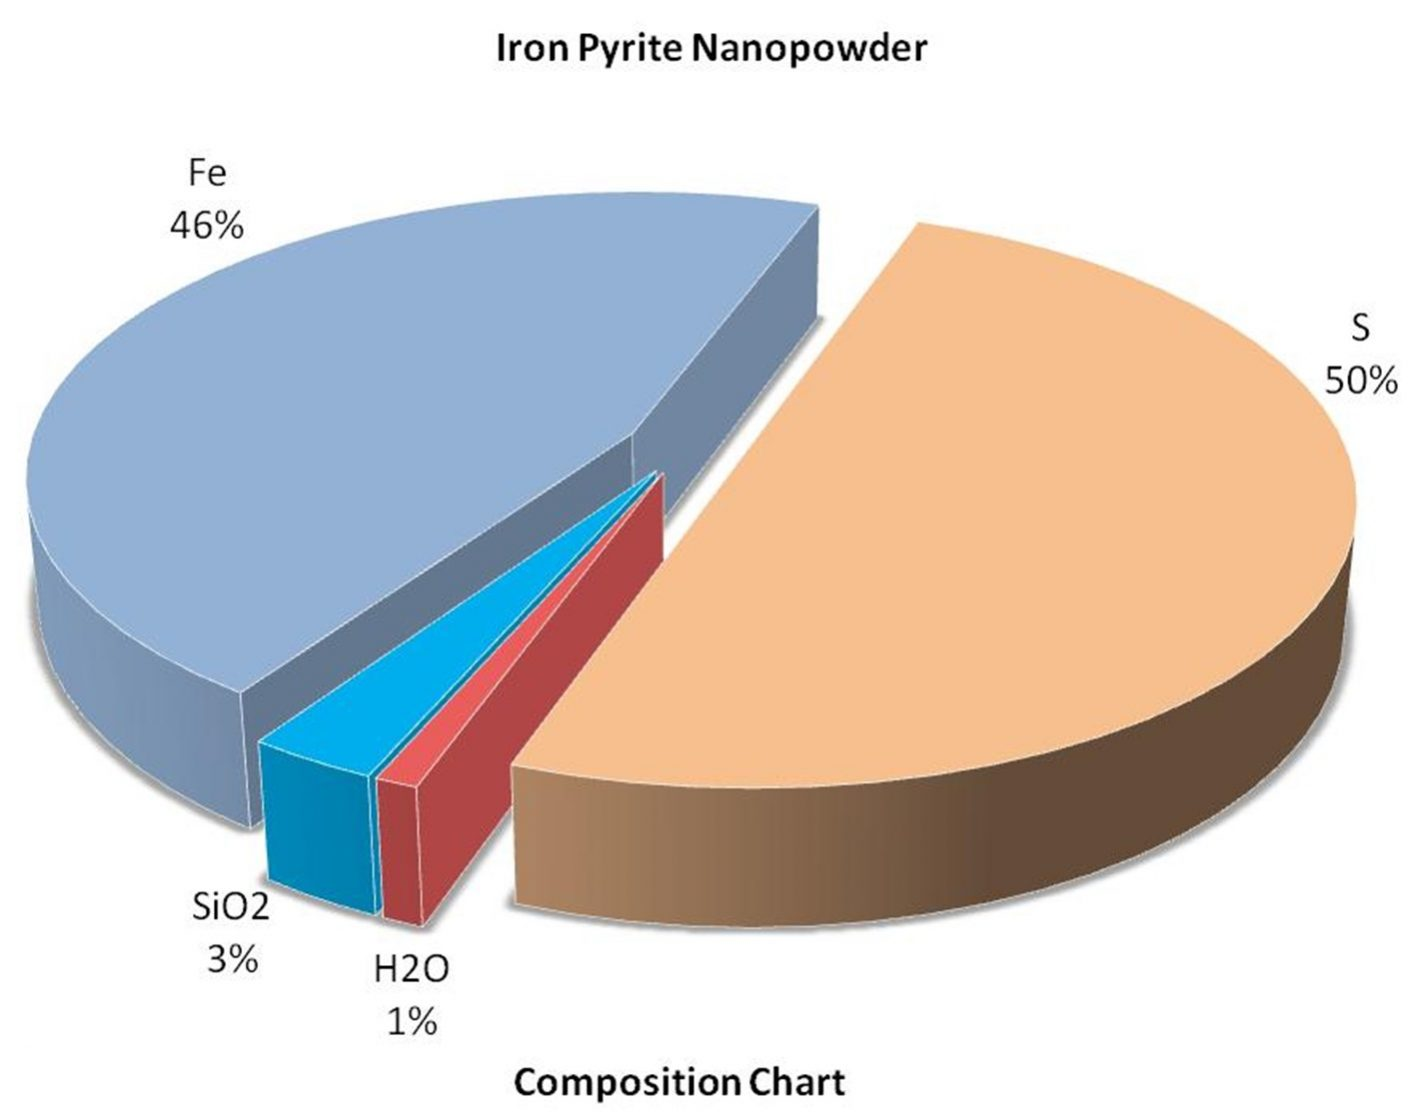 Composition Chart - Fes2 Alloy Nanoparticles